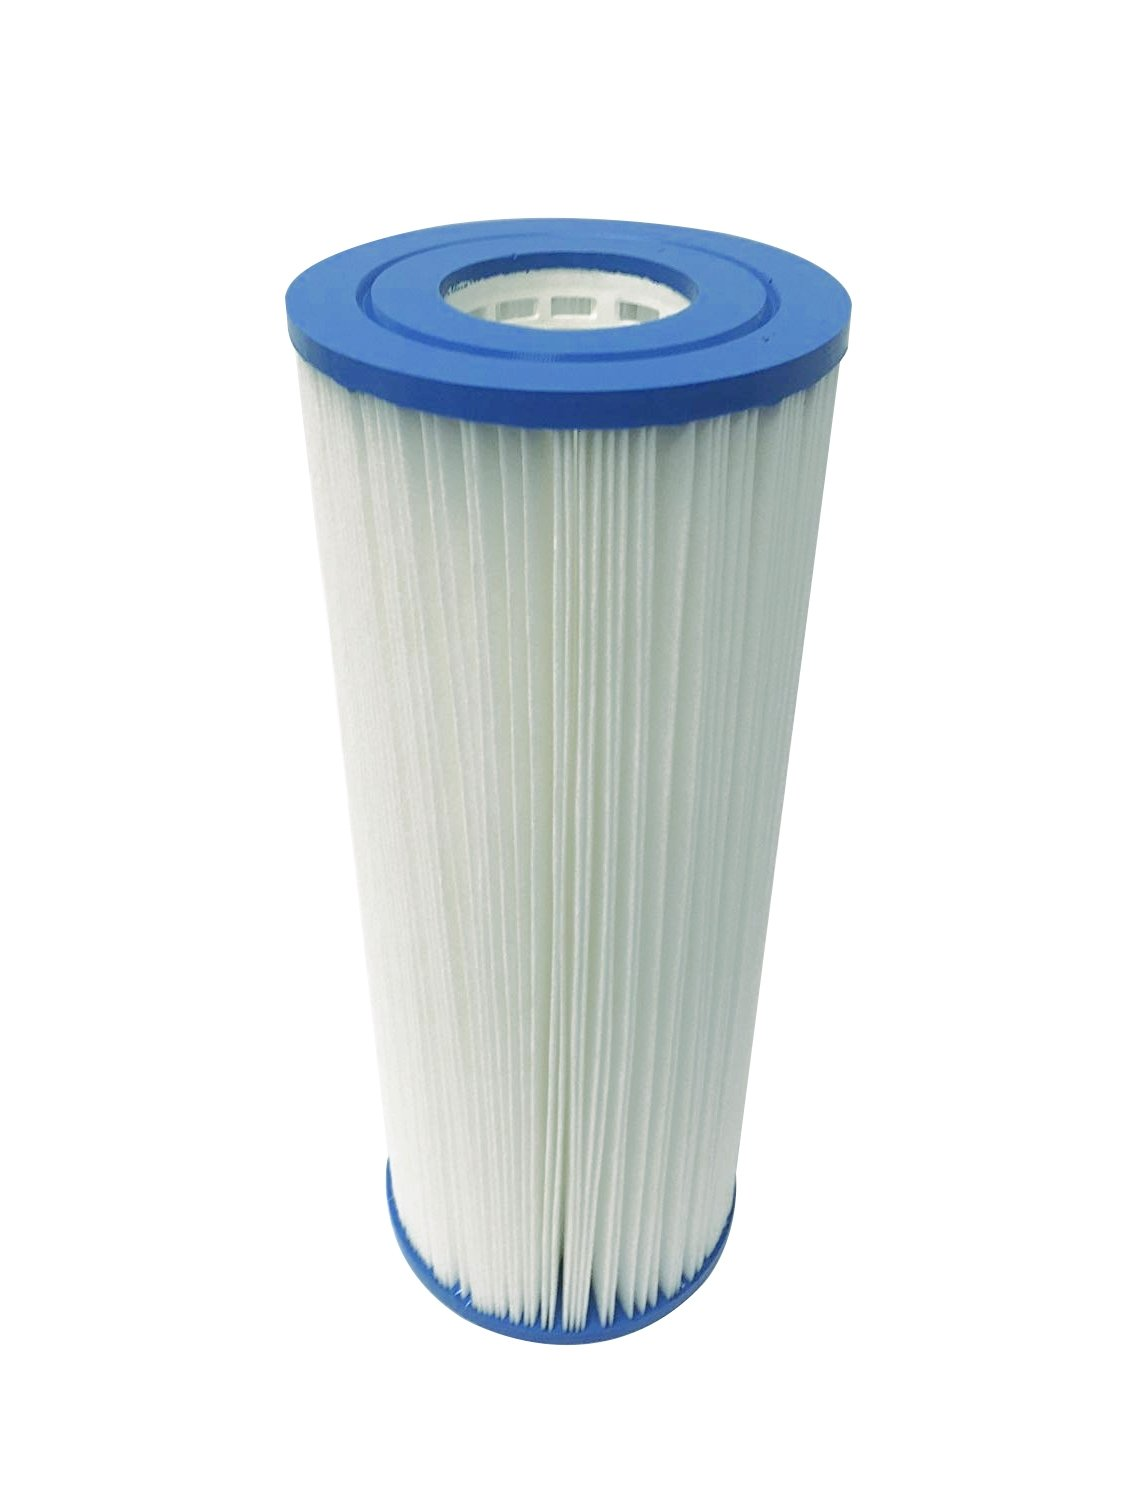 Guardian Filtration Products, Replacement Pool Spa Filter, For Unicel C-4320, Filbur FC-1215, Pleatco PA20 411-111